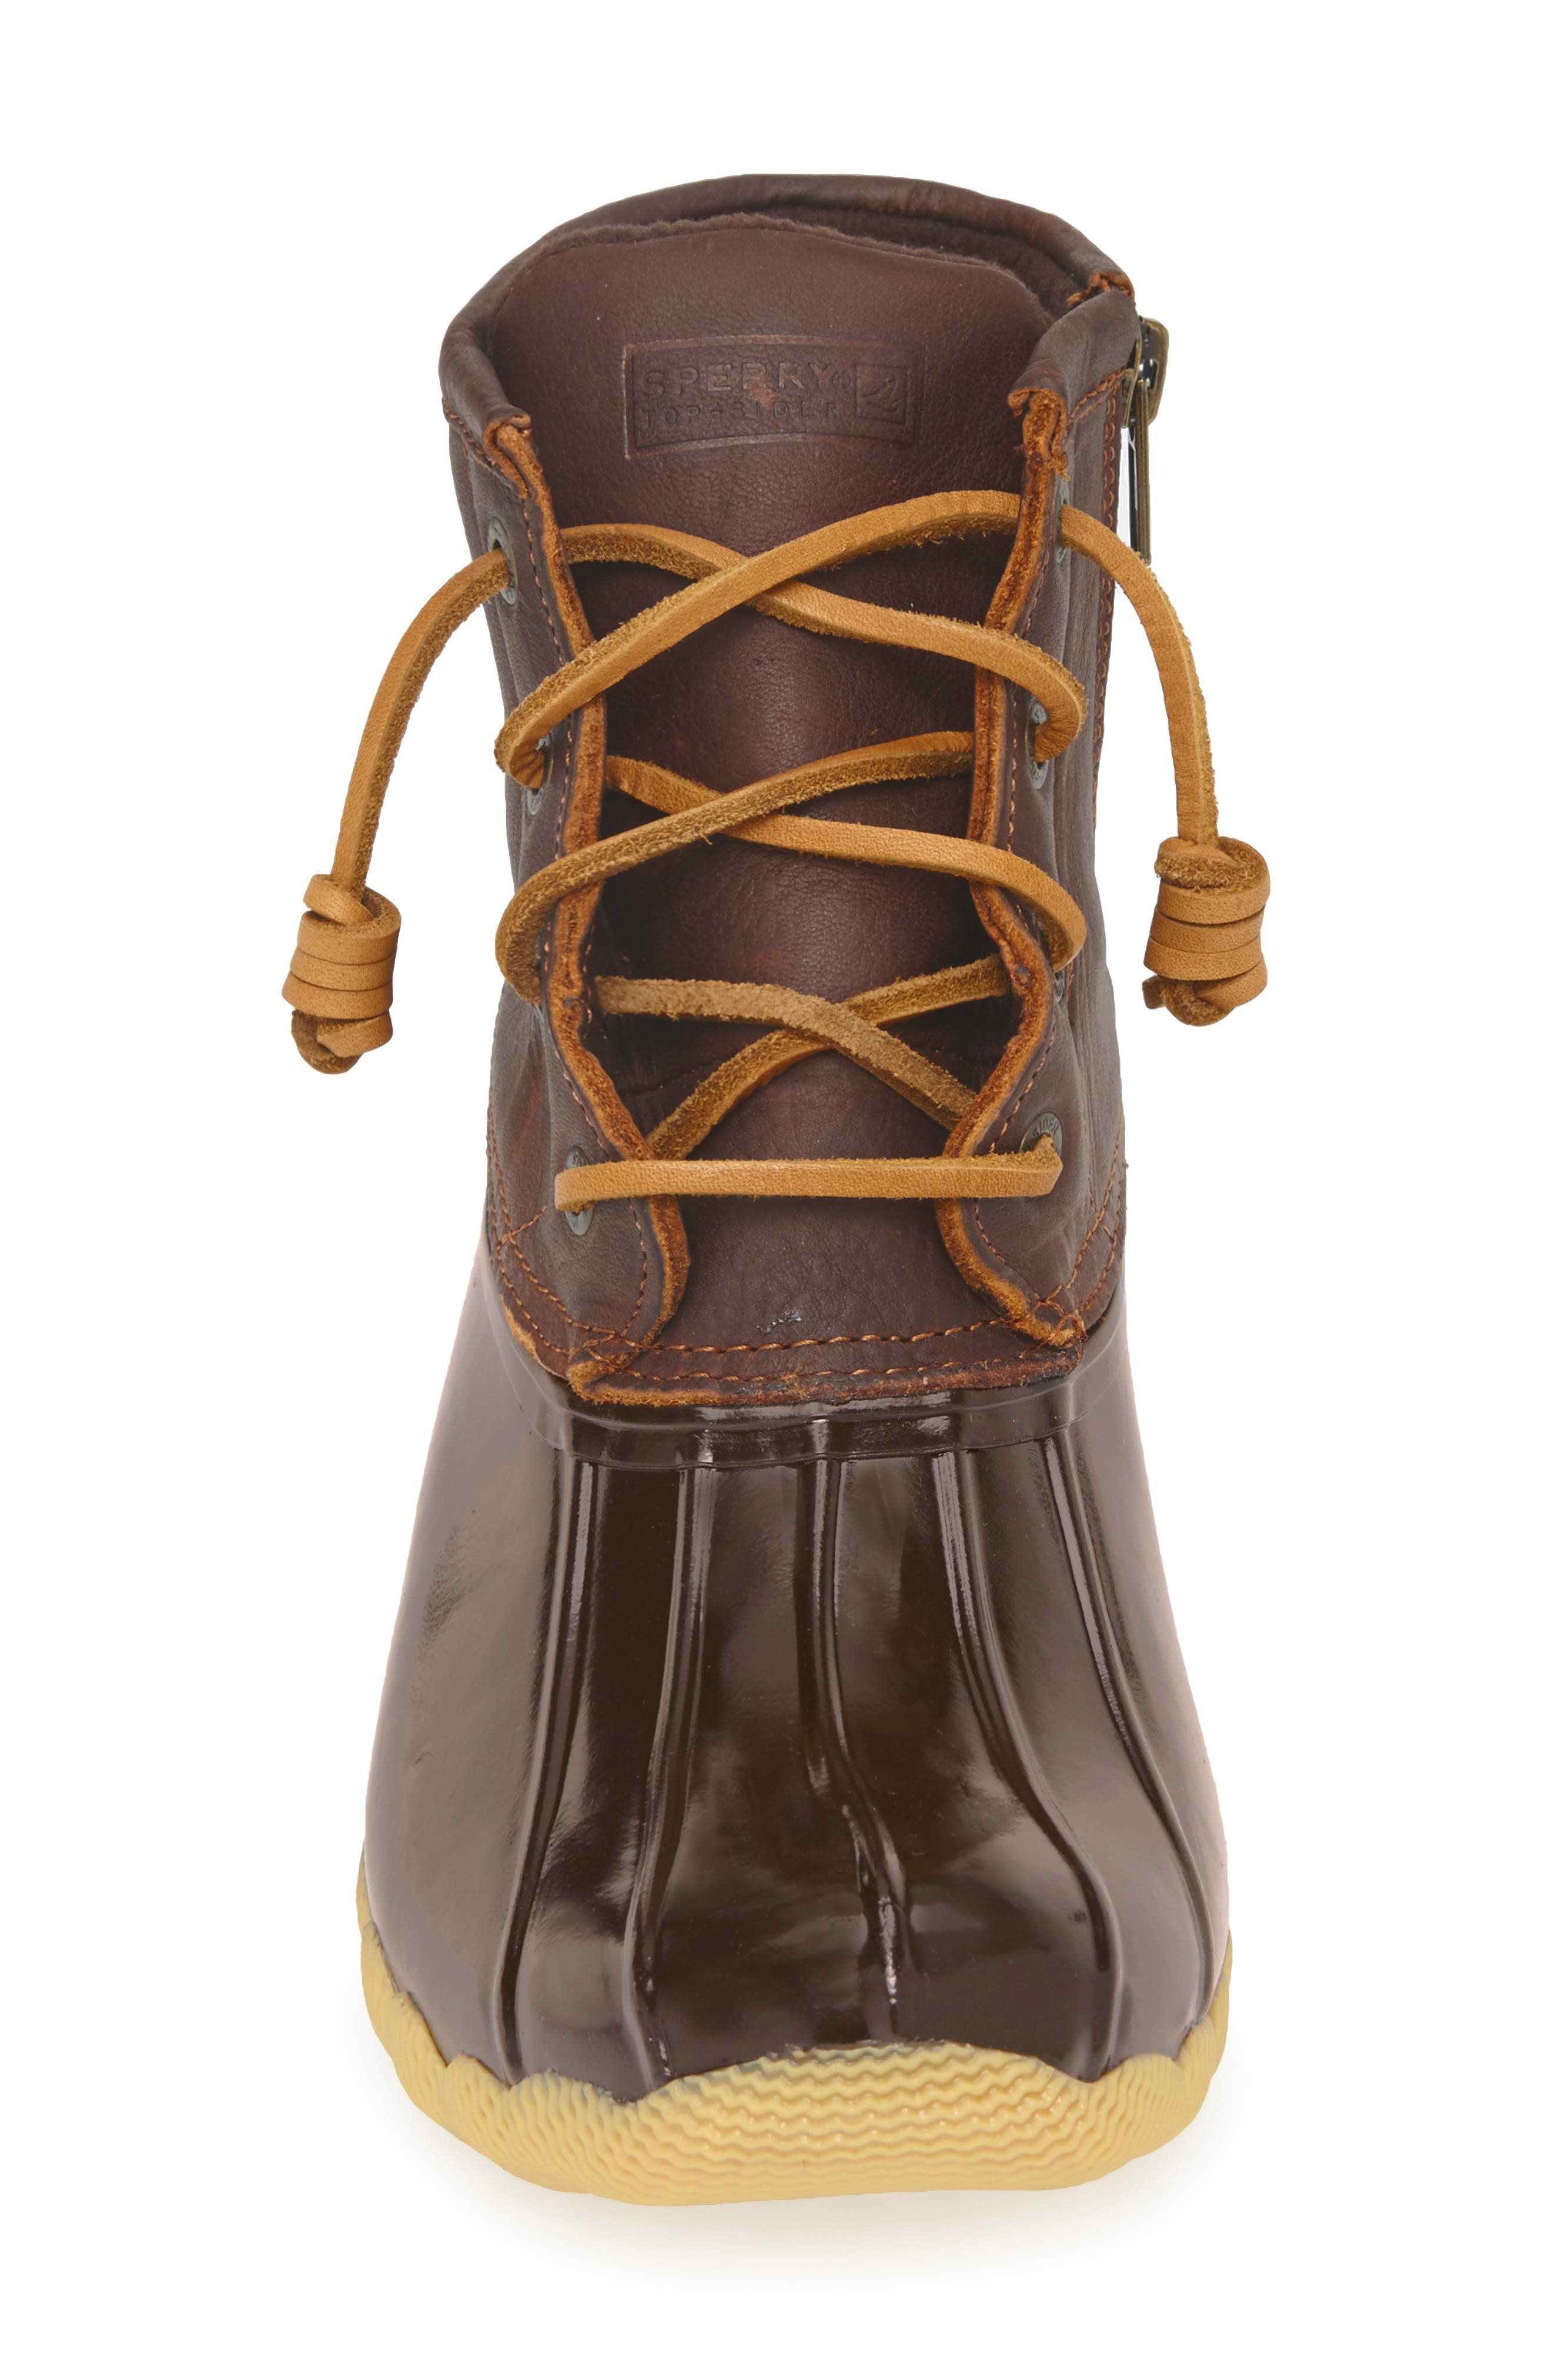 Saltwater Rain Boot,                             Alternate thumbnail 3, color,                             Tan/ Brown